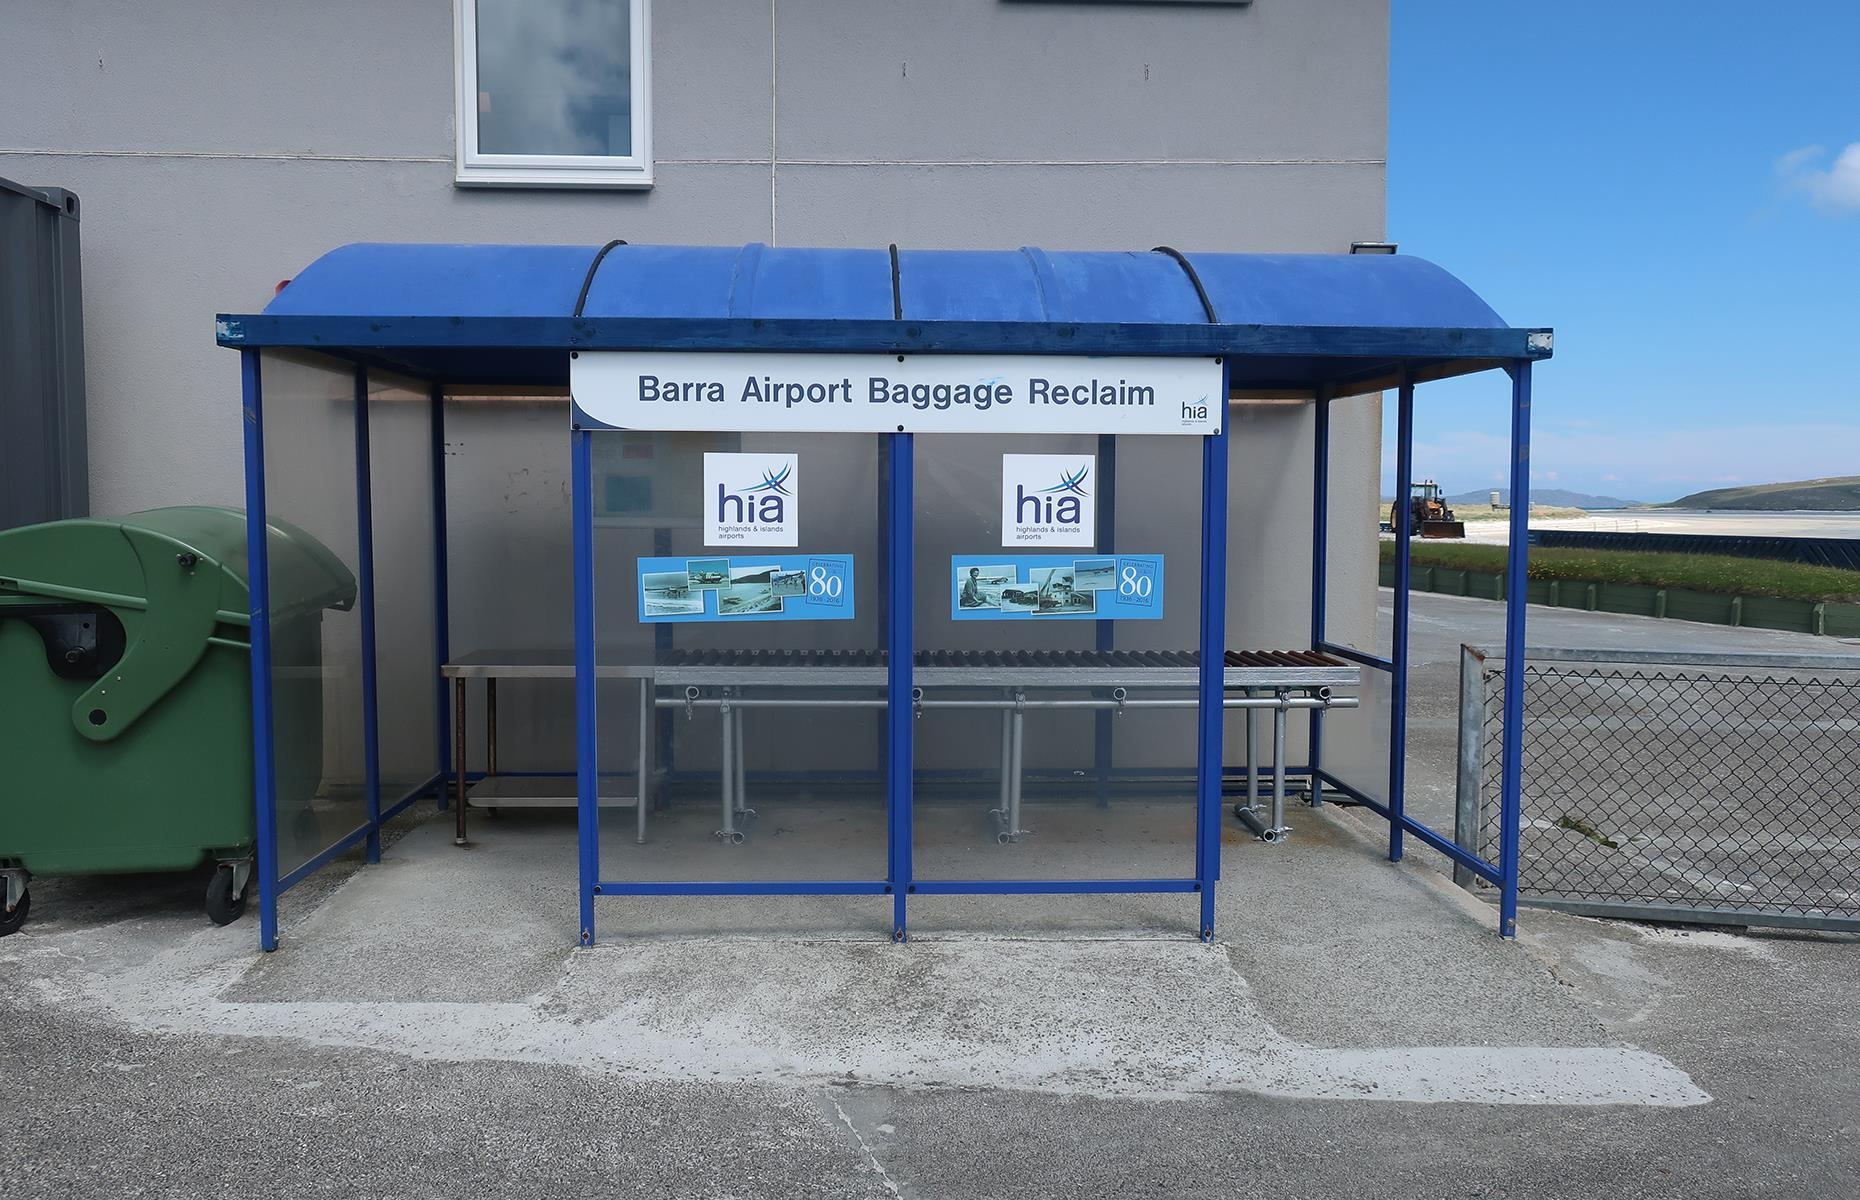 Slide 7 of 36: The beach is tidal, meaning the runways are underwater at certain times of day. Schedules are dictated by the tides, runways are marked by wooden poles at each end, and the baggage reclaim looks more like a bus stop than an arrivals hall. Its facilities are minimal, but when arriving onto the soft white sand of the Isle of Barra, none of that really matters – it's all about the scenery here.